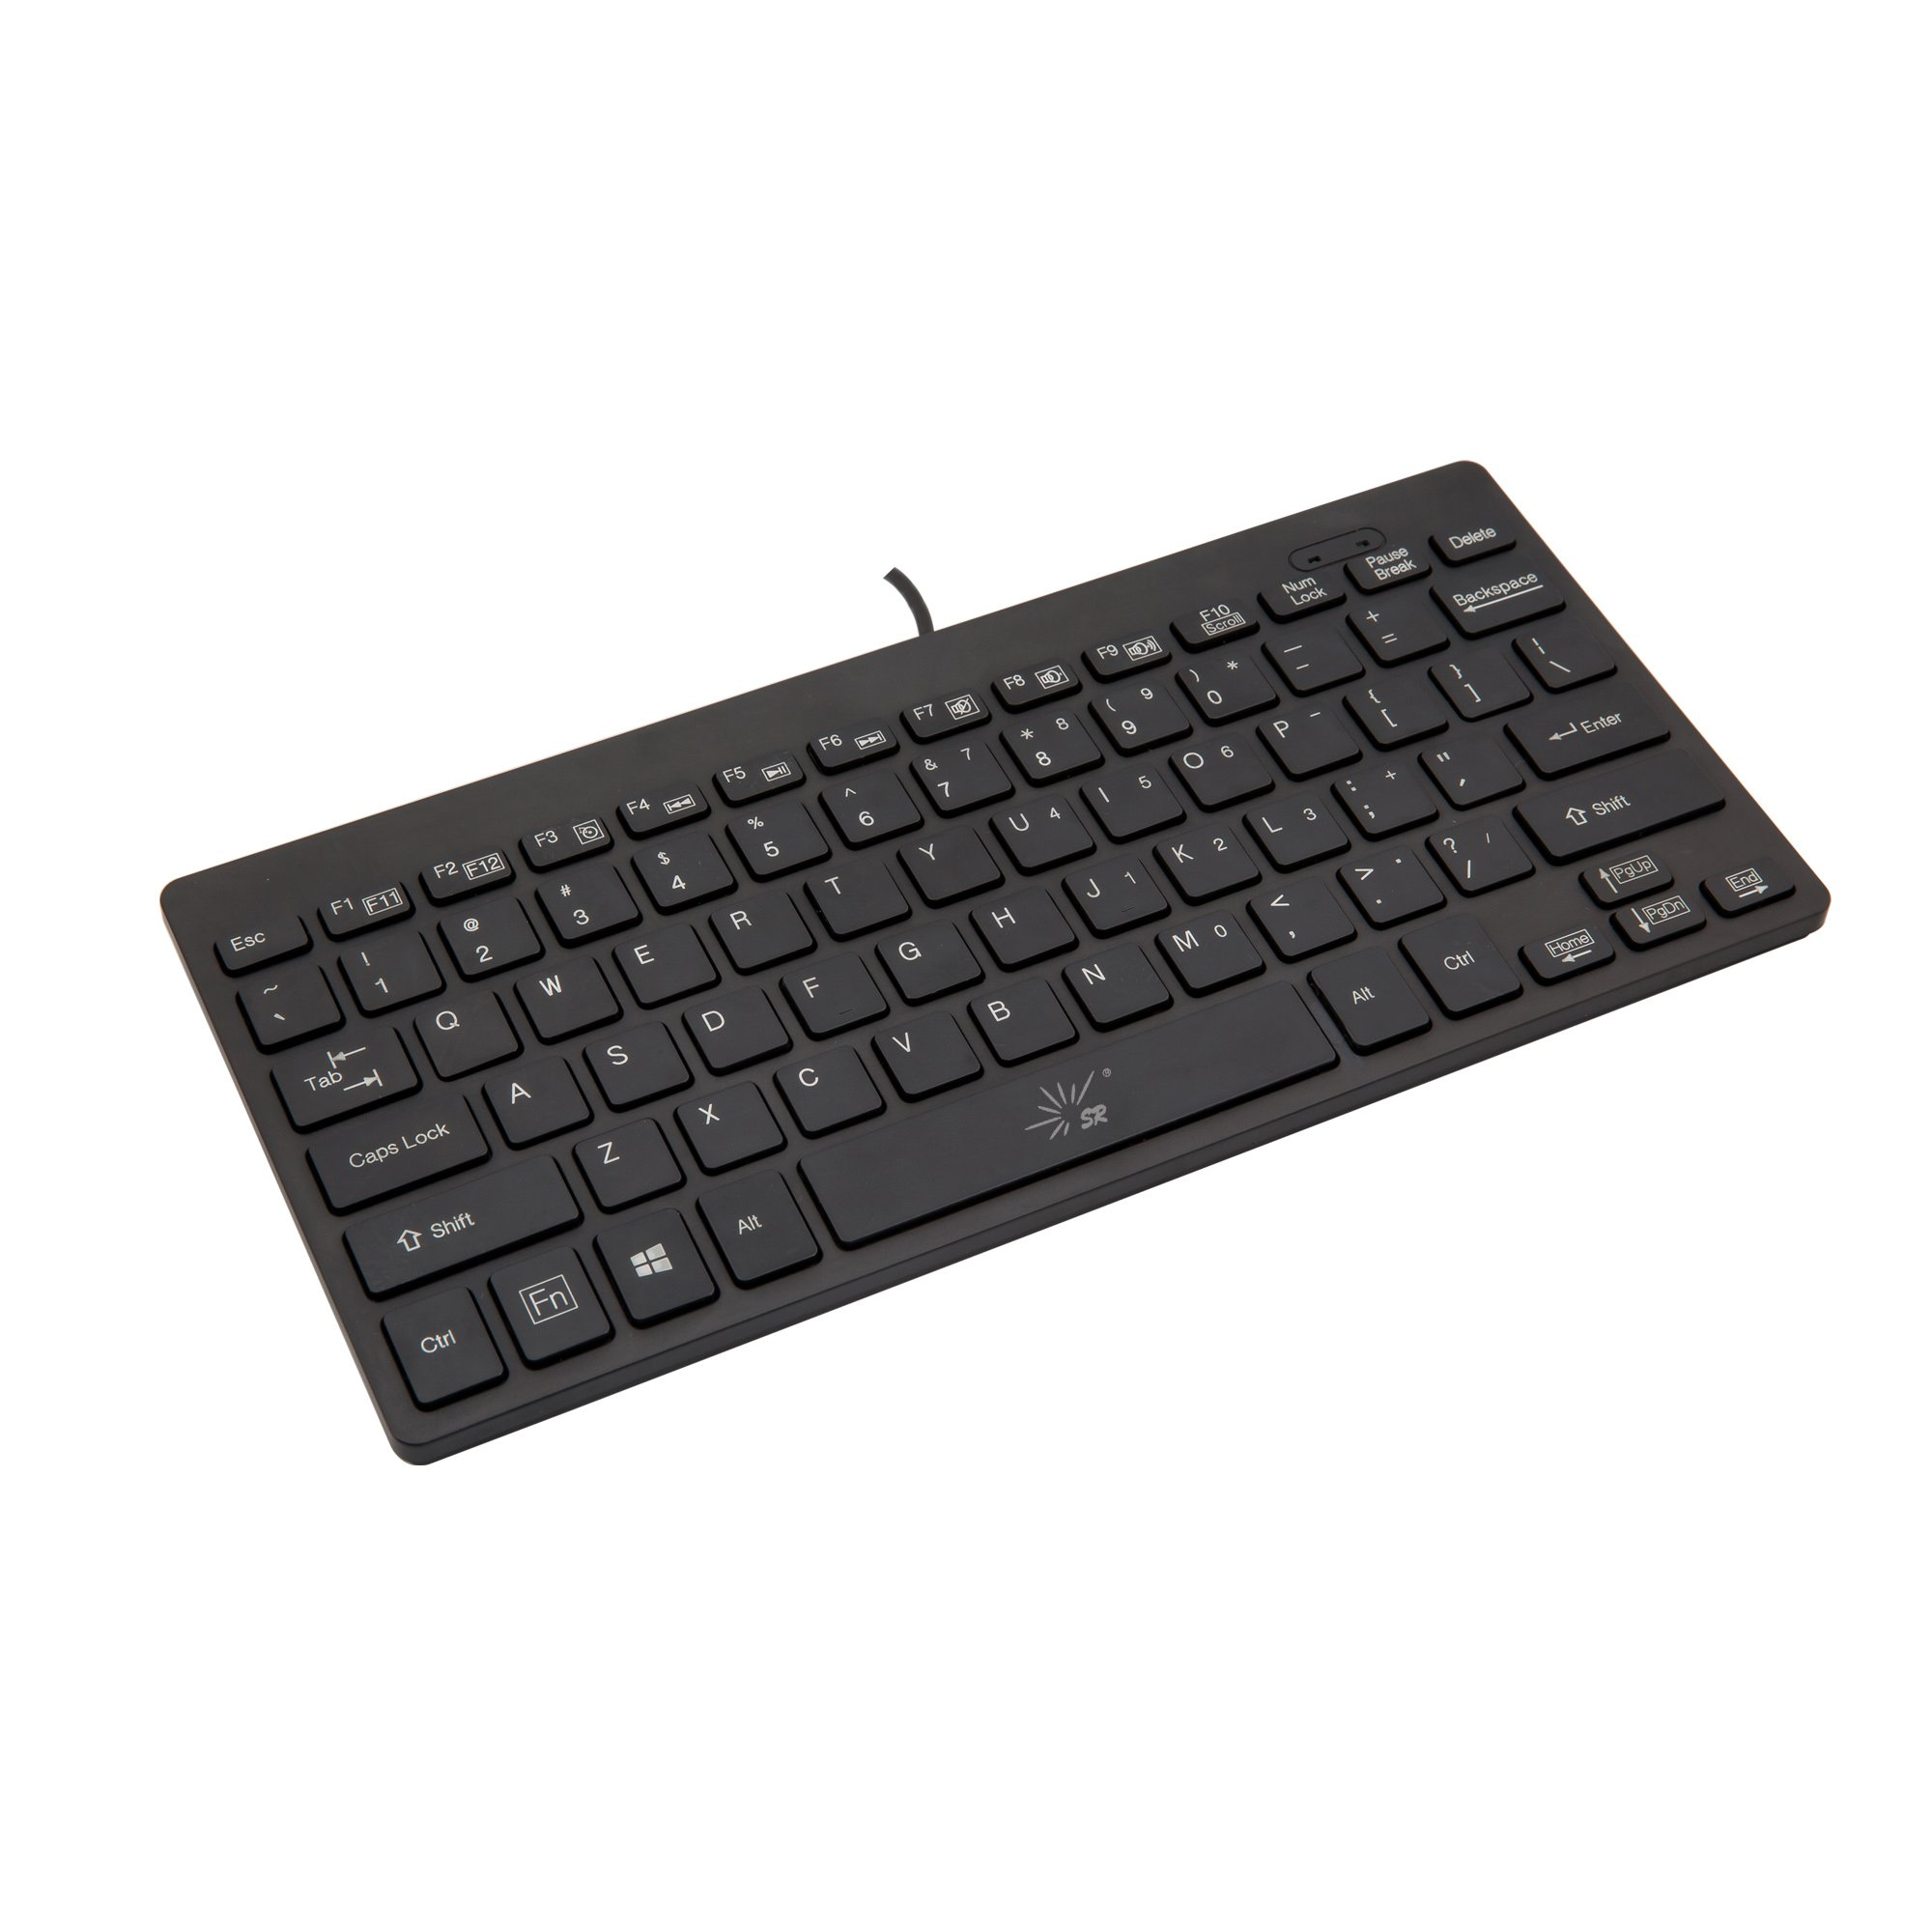 SR Mini Keyboard Wired Thin Light 78 Keys Usb Multimedia Small for Pc Computer Laptop by SR